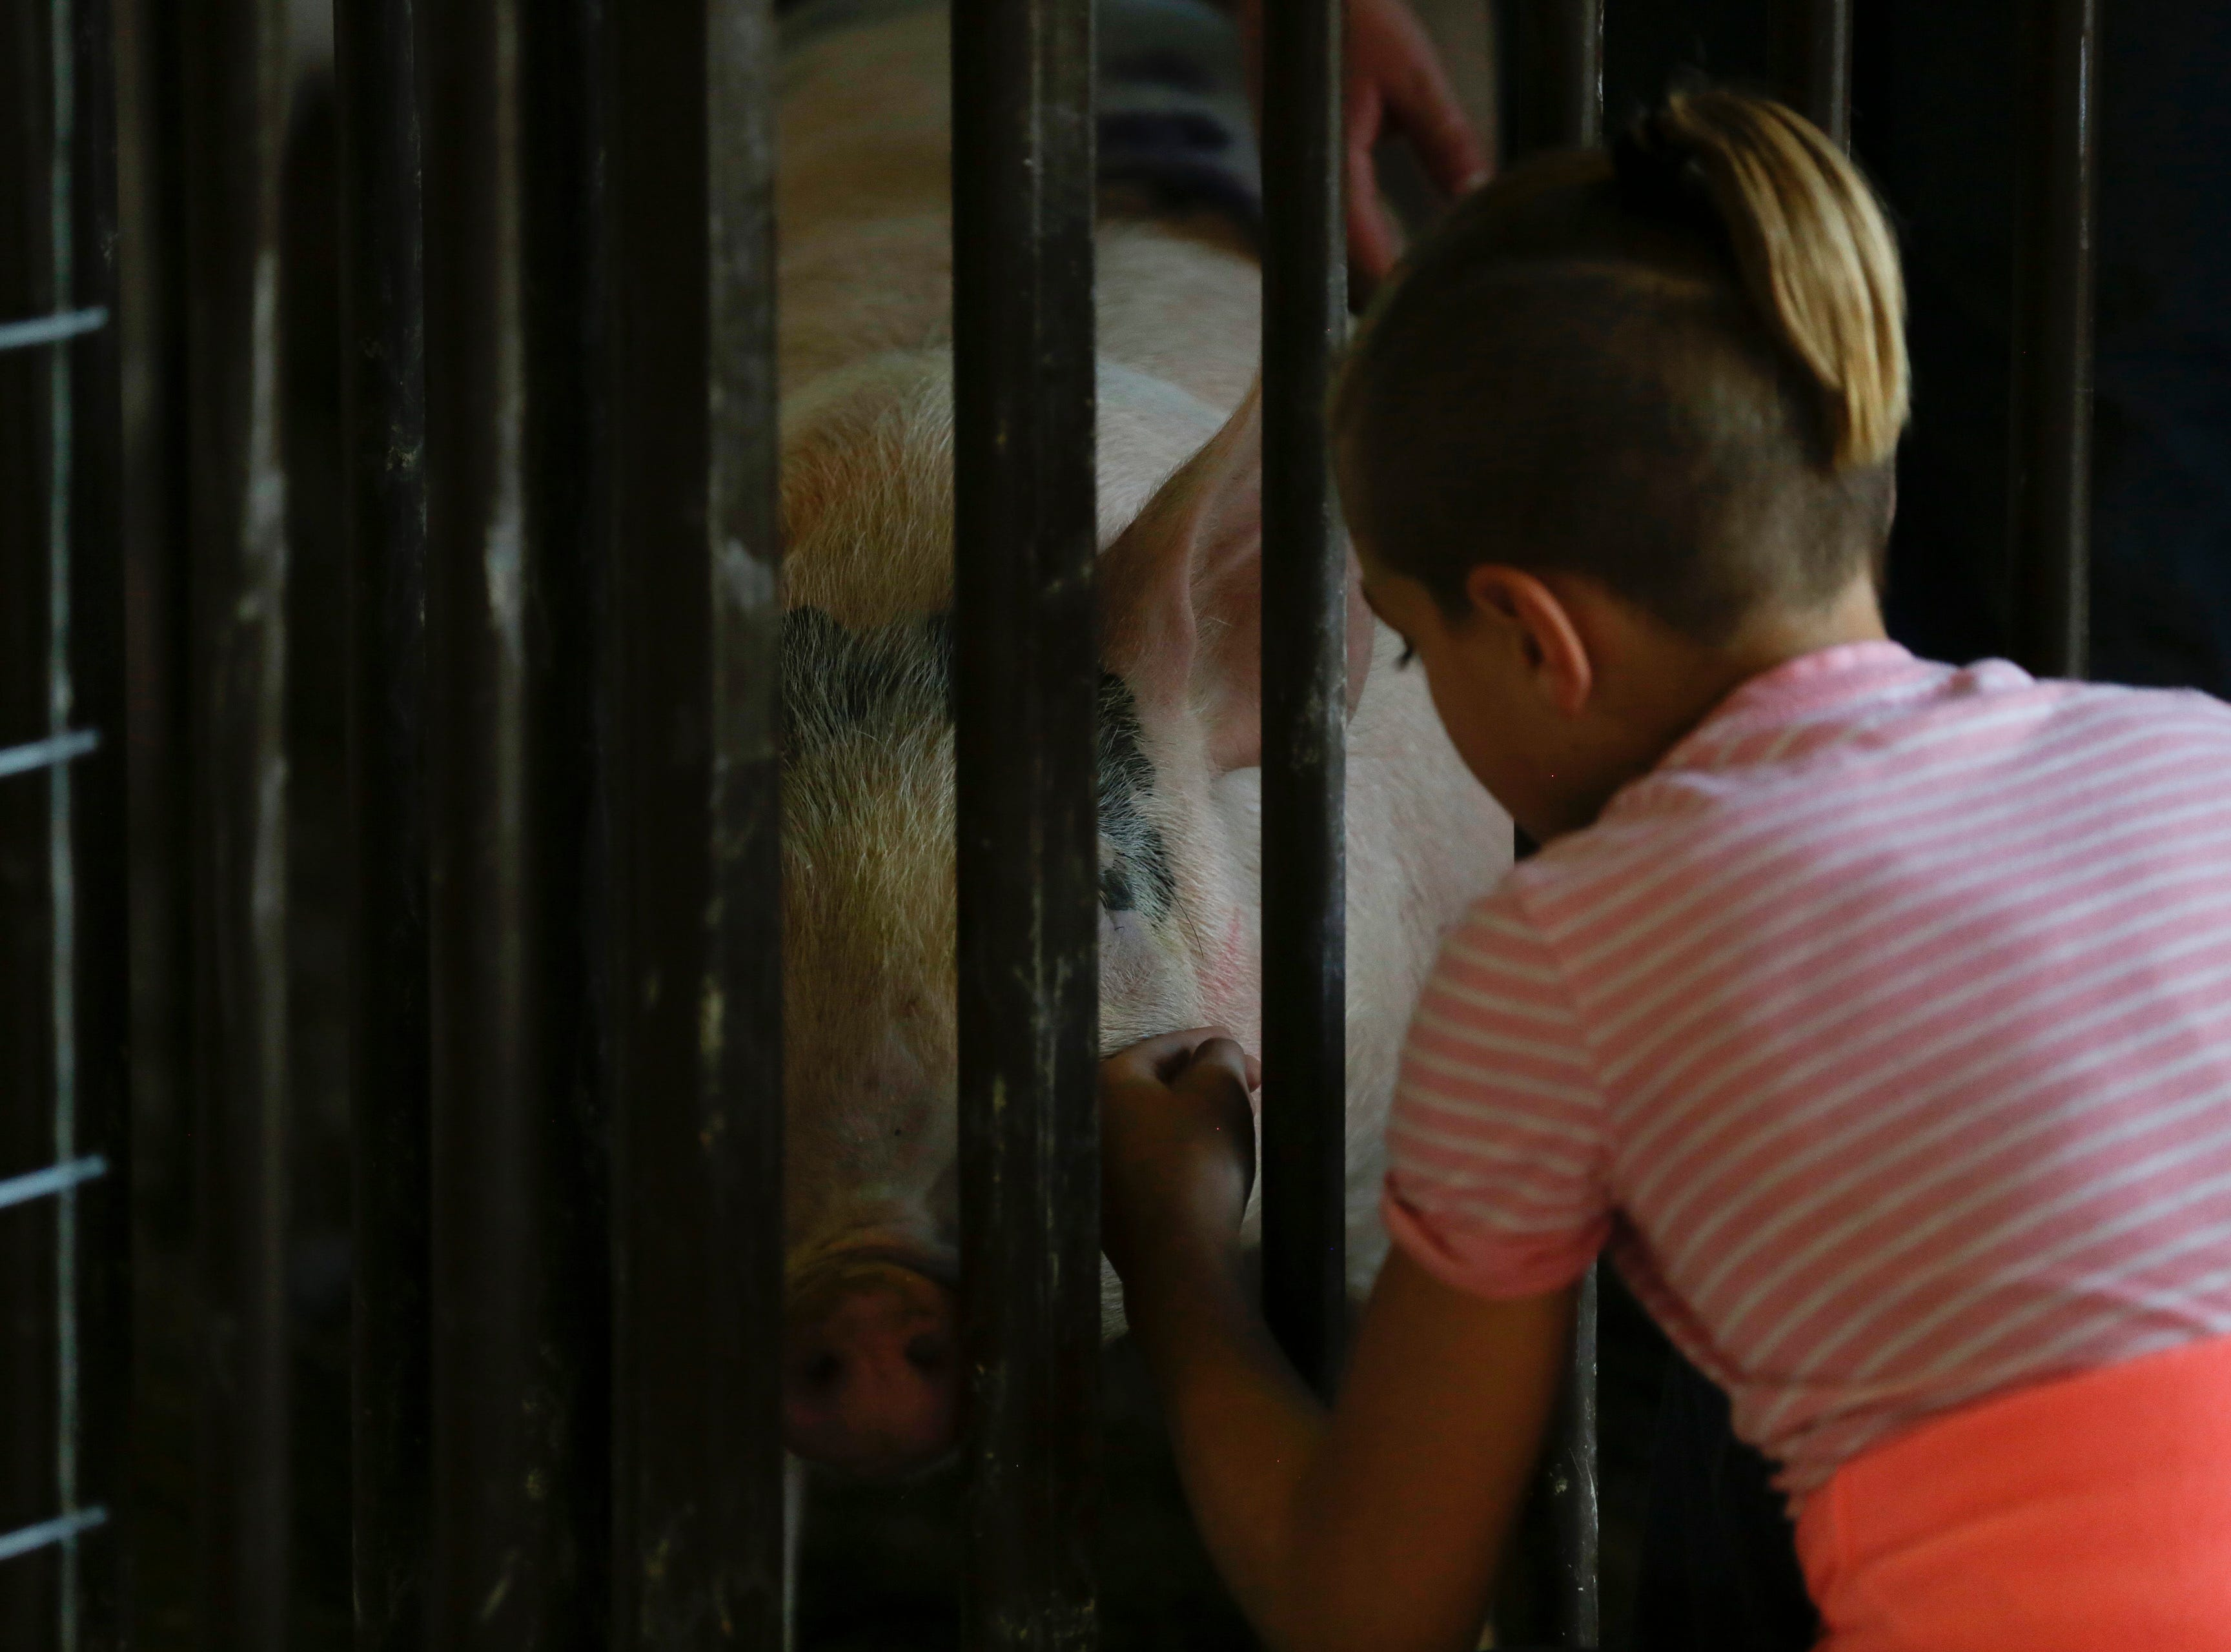 Claire Dorshorst, 9, pets her brother's pig before it goes up for auction during the market animal sale at the Central Wisconsin State Fair in Marshfield Wednesday, August 22, 2018.